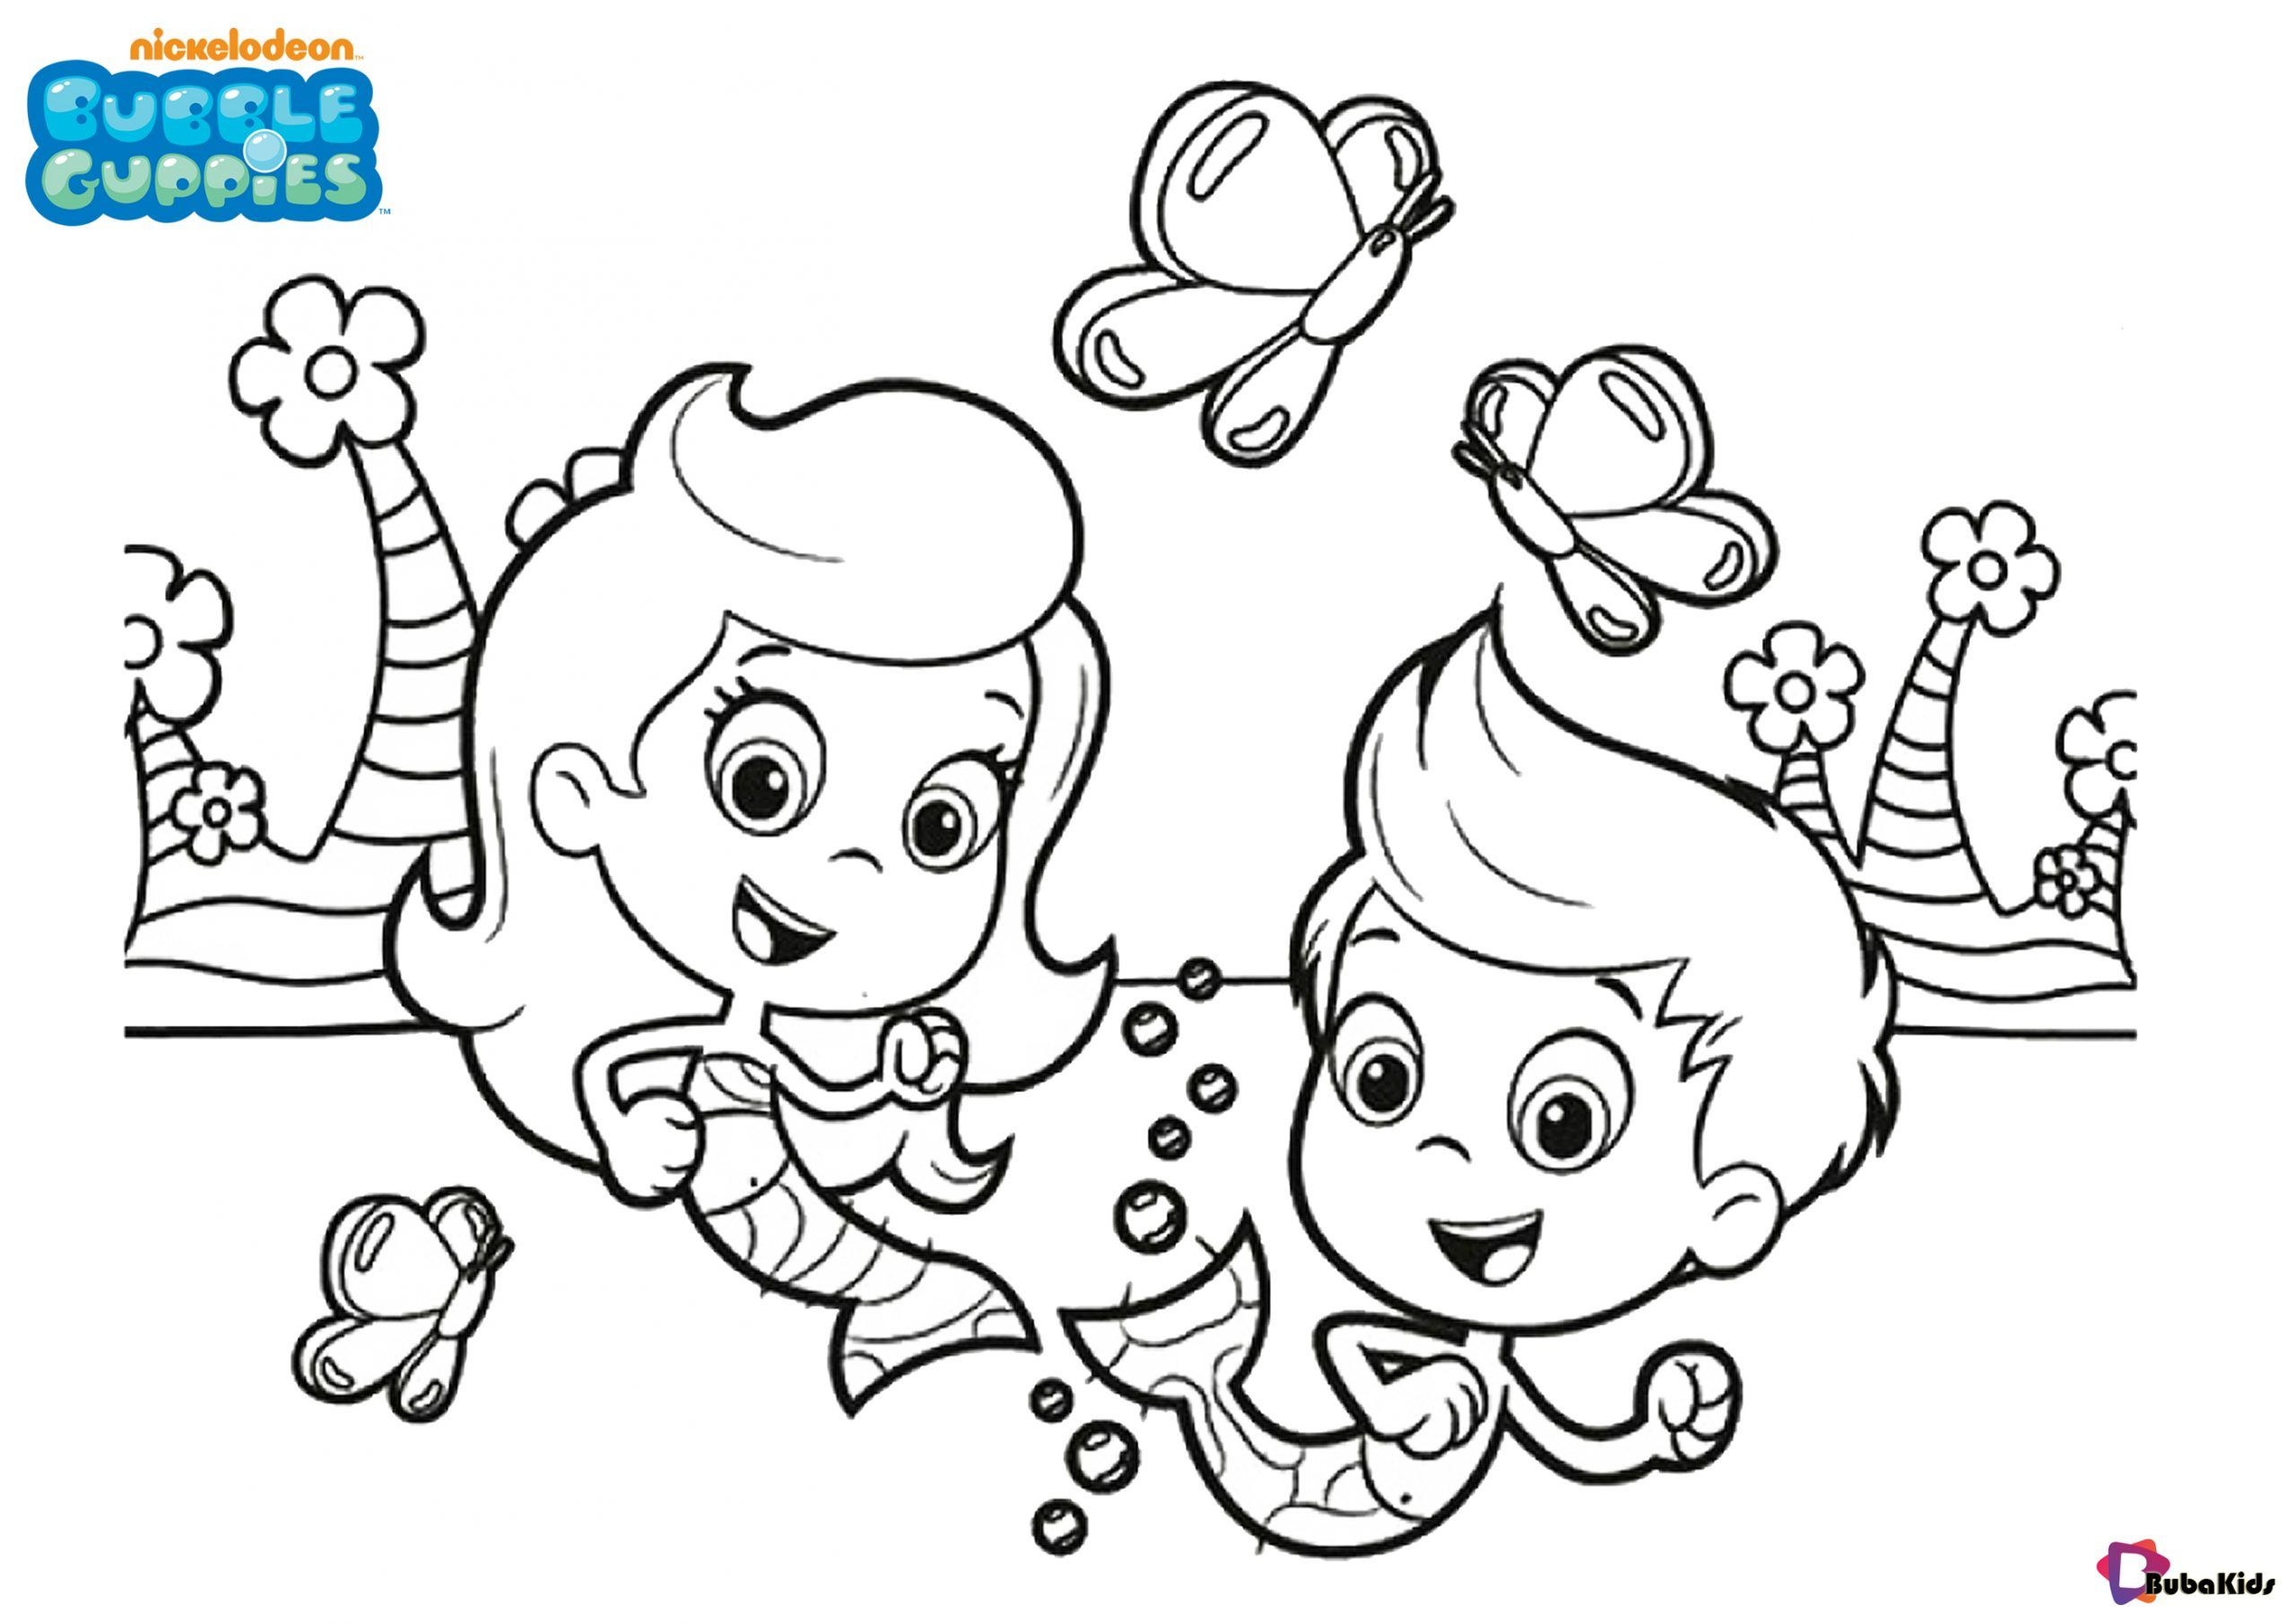 Easy and printable bubble guppies colouring pages for kids